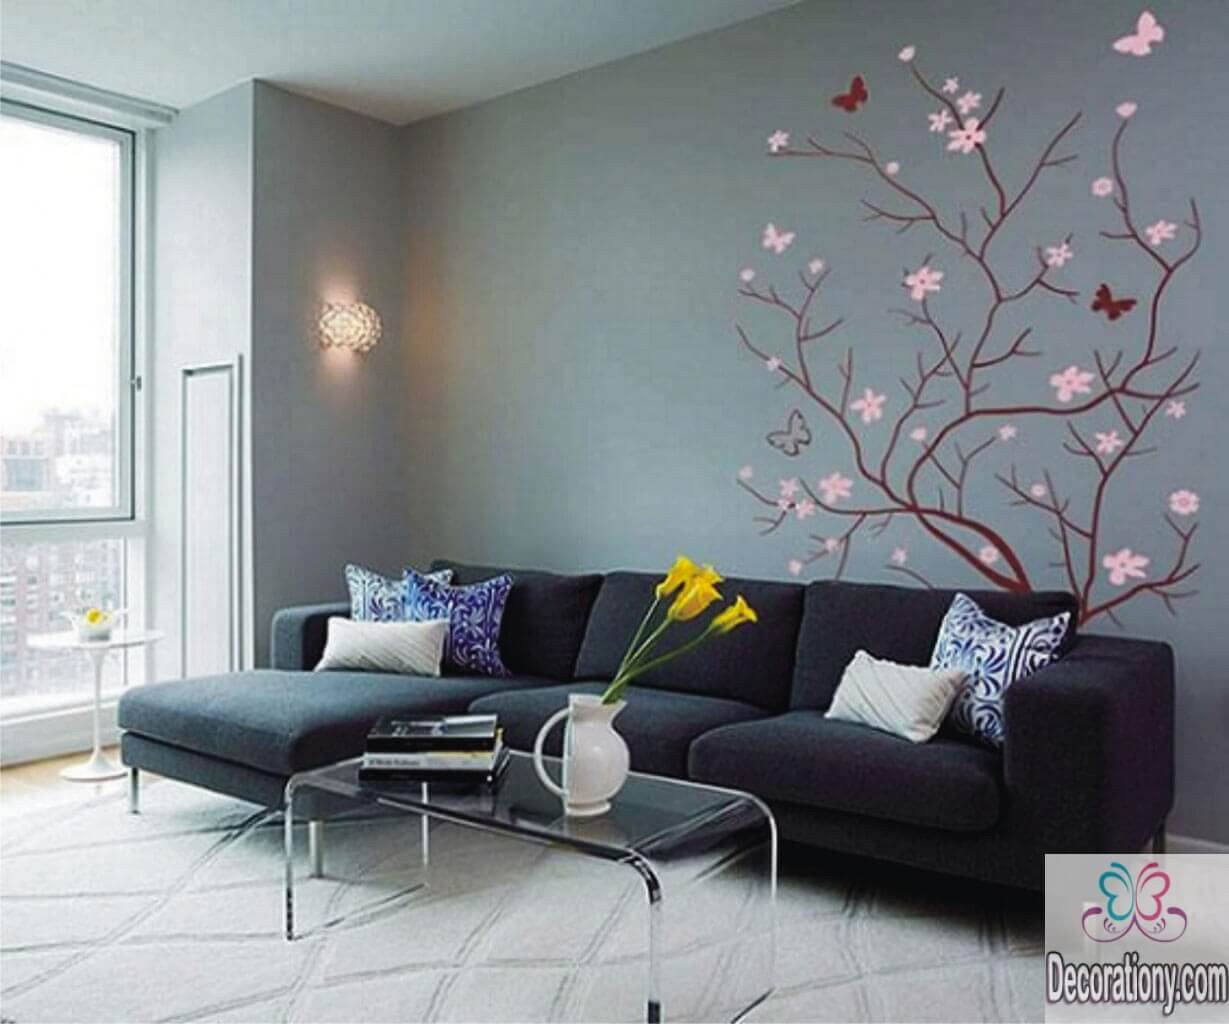 Living Room Wall Decor Ideas New 45 Living Room Wall Decor Ideas